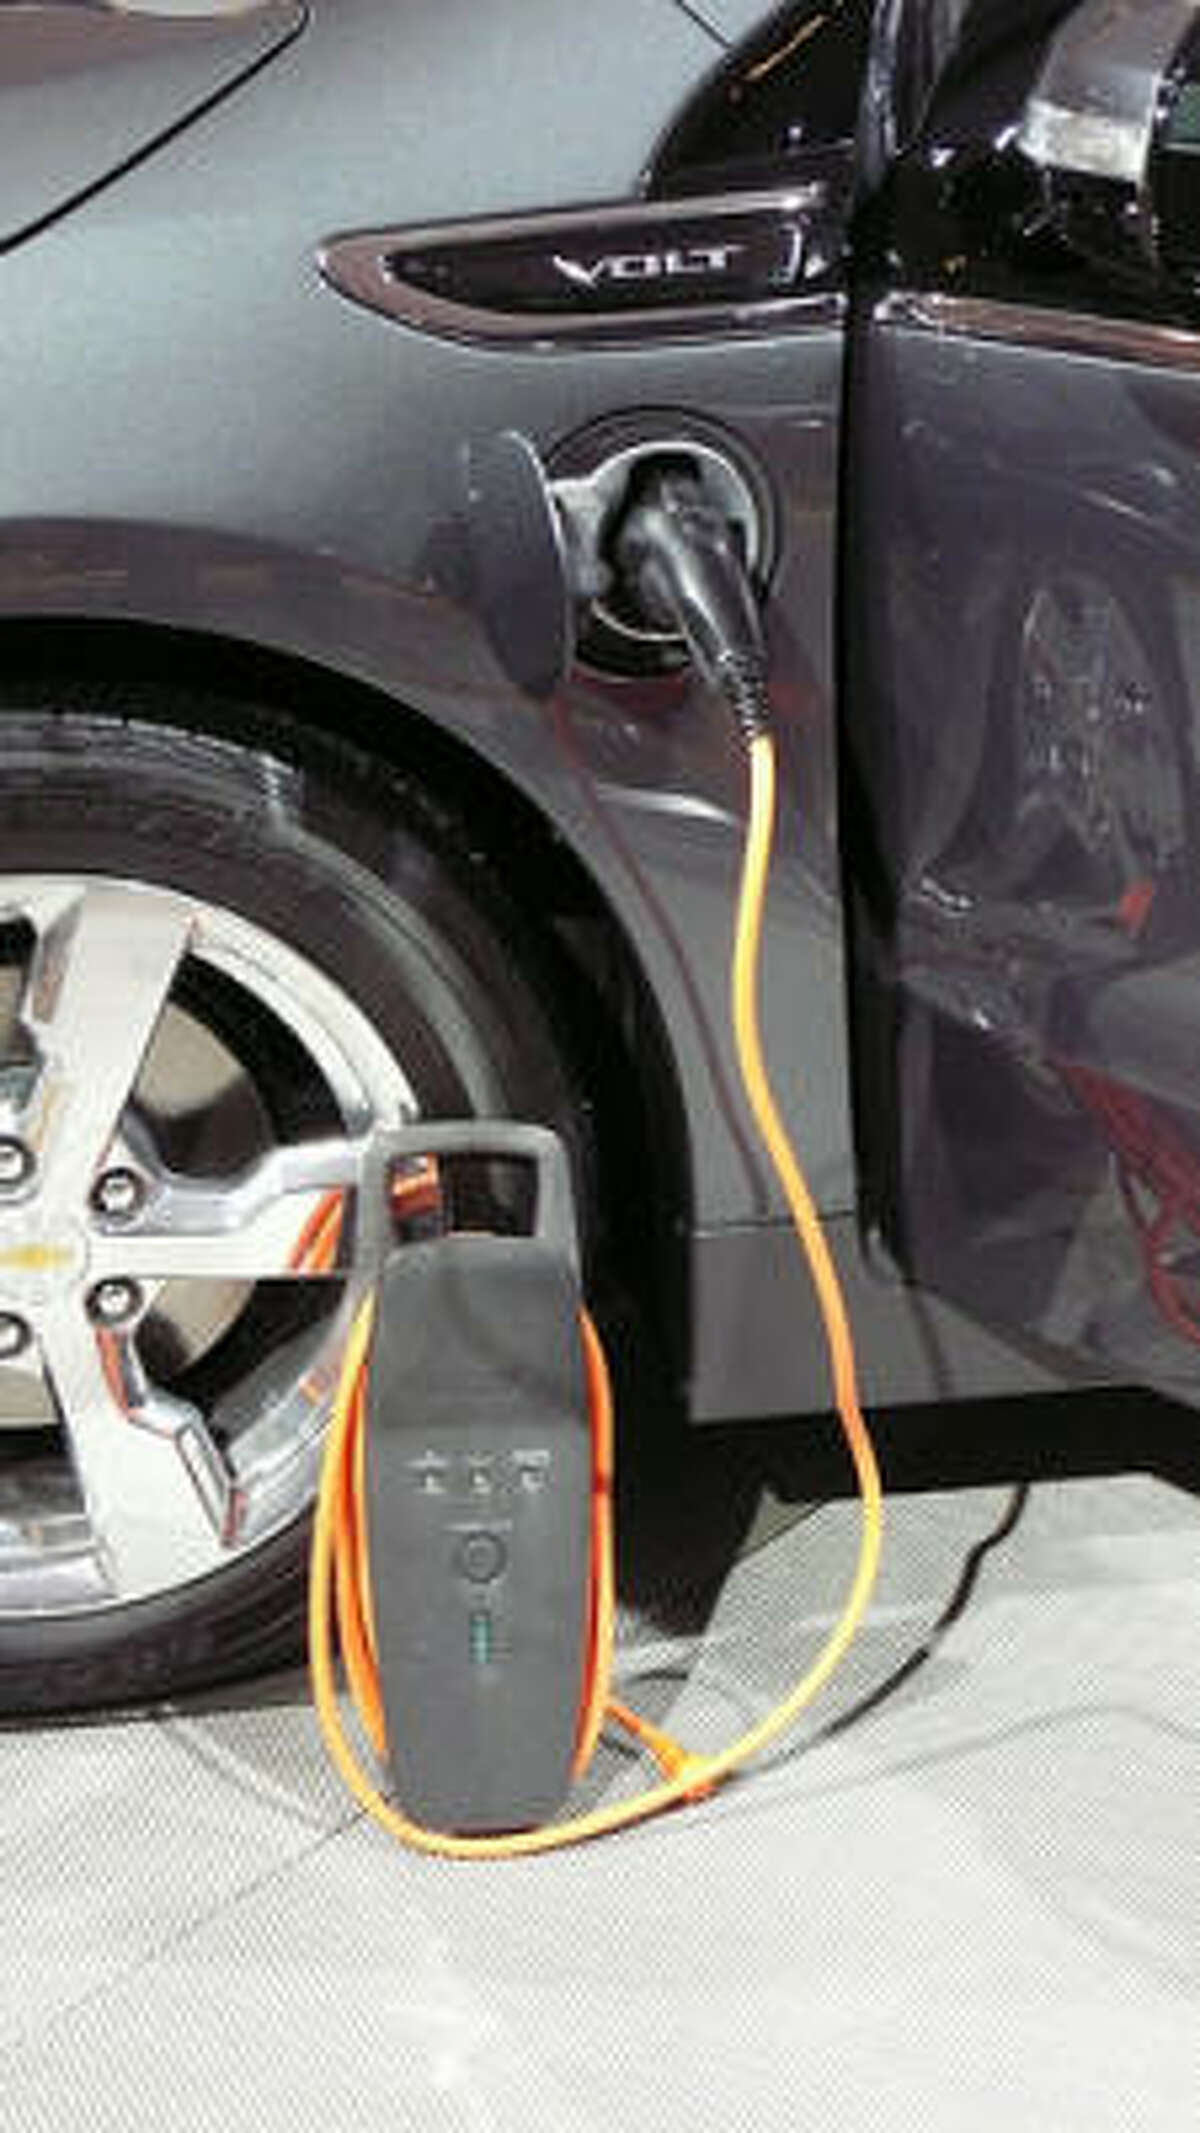 A portable Chevy Volt charger.